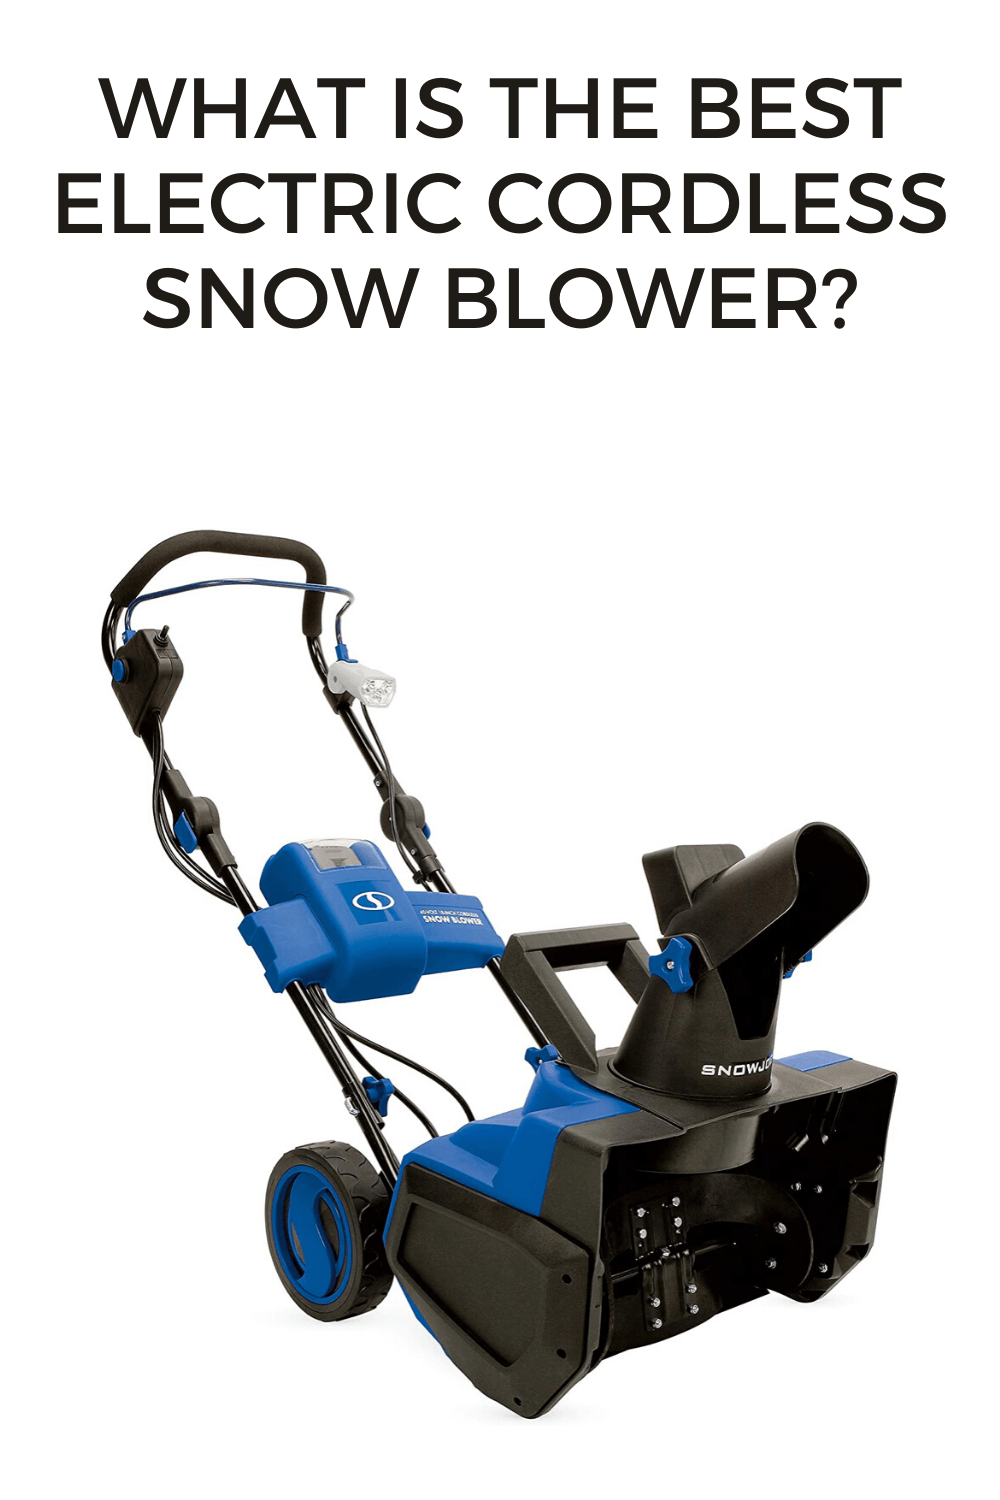 What is the Best Electric Cordless Snow Blower?